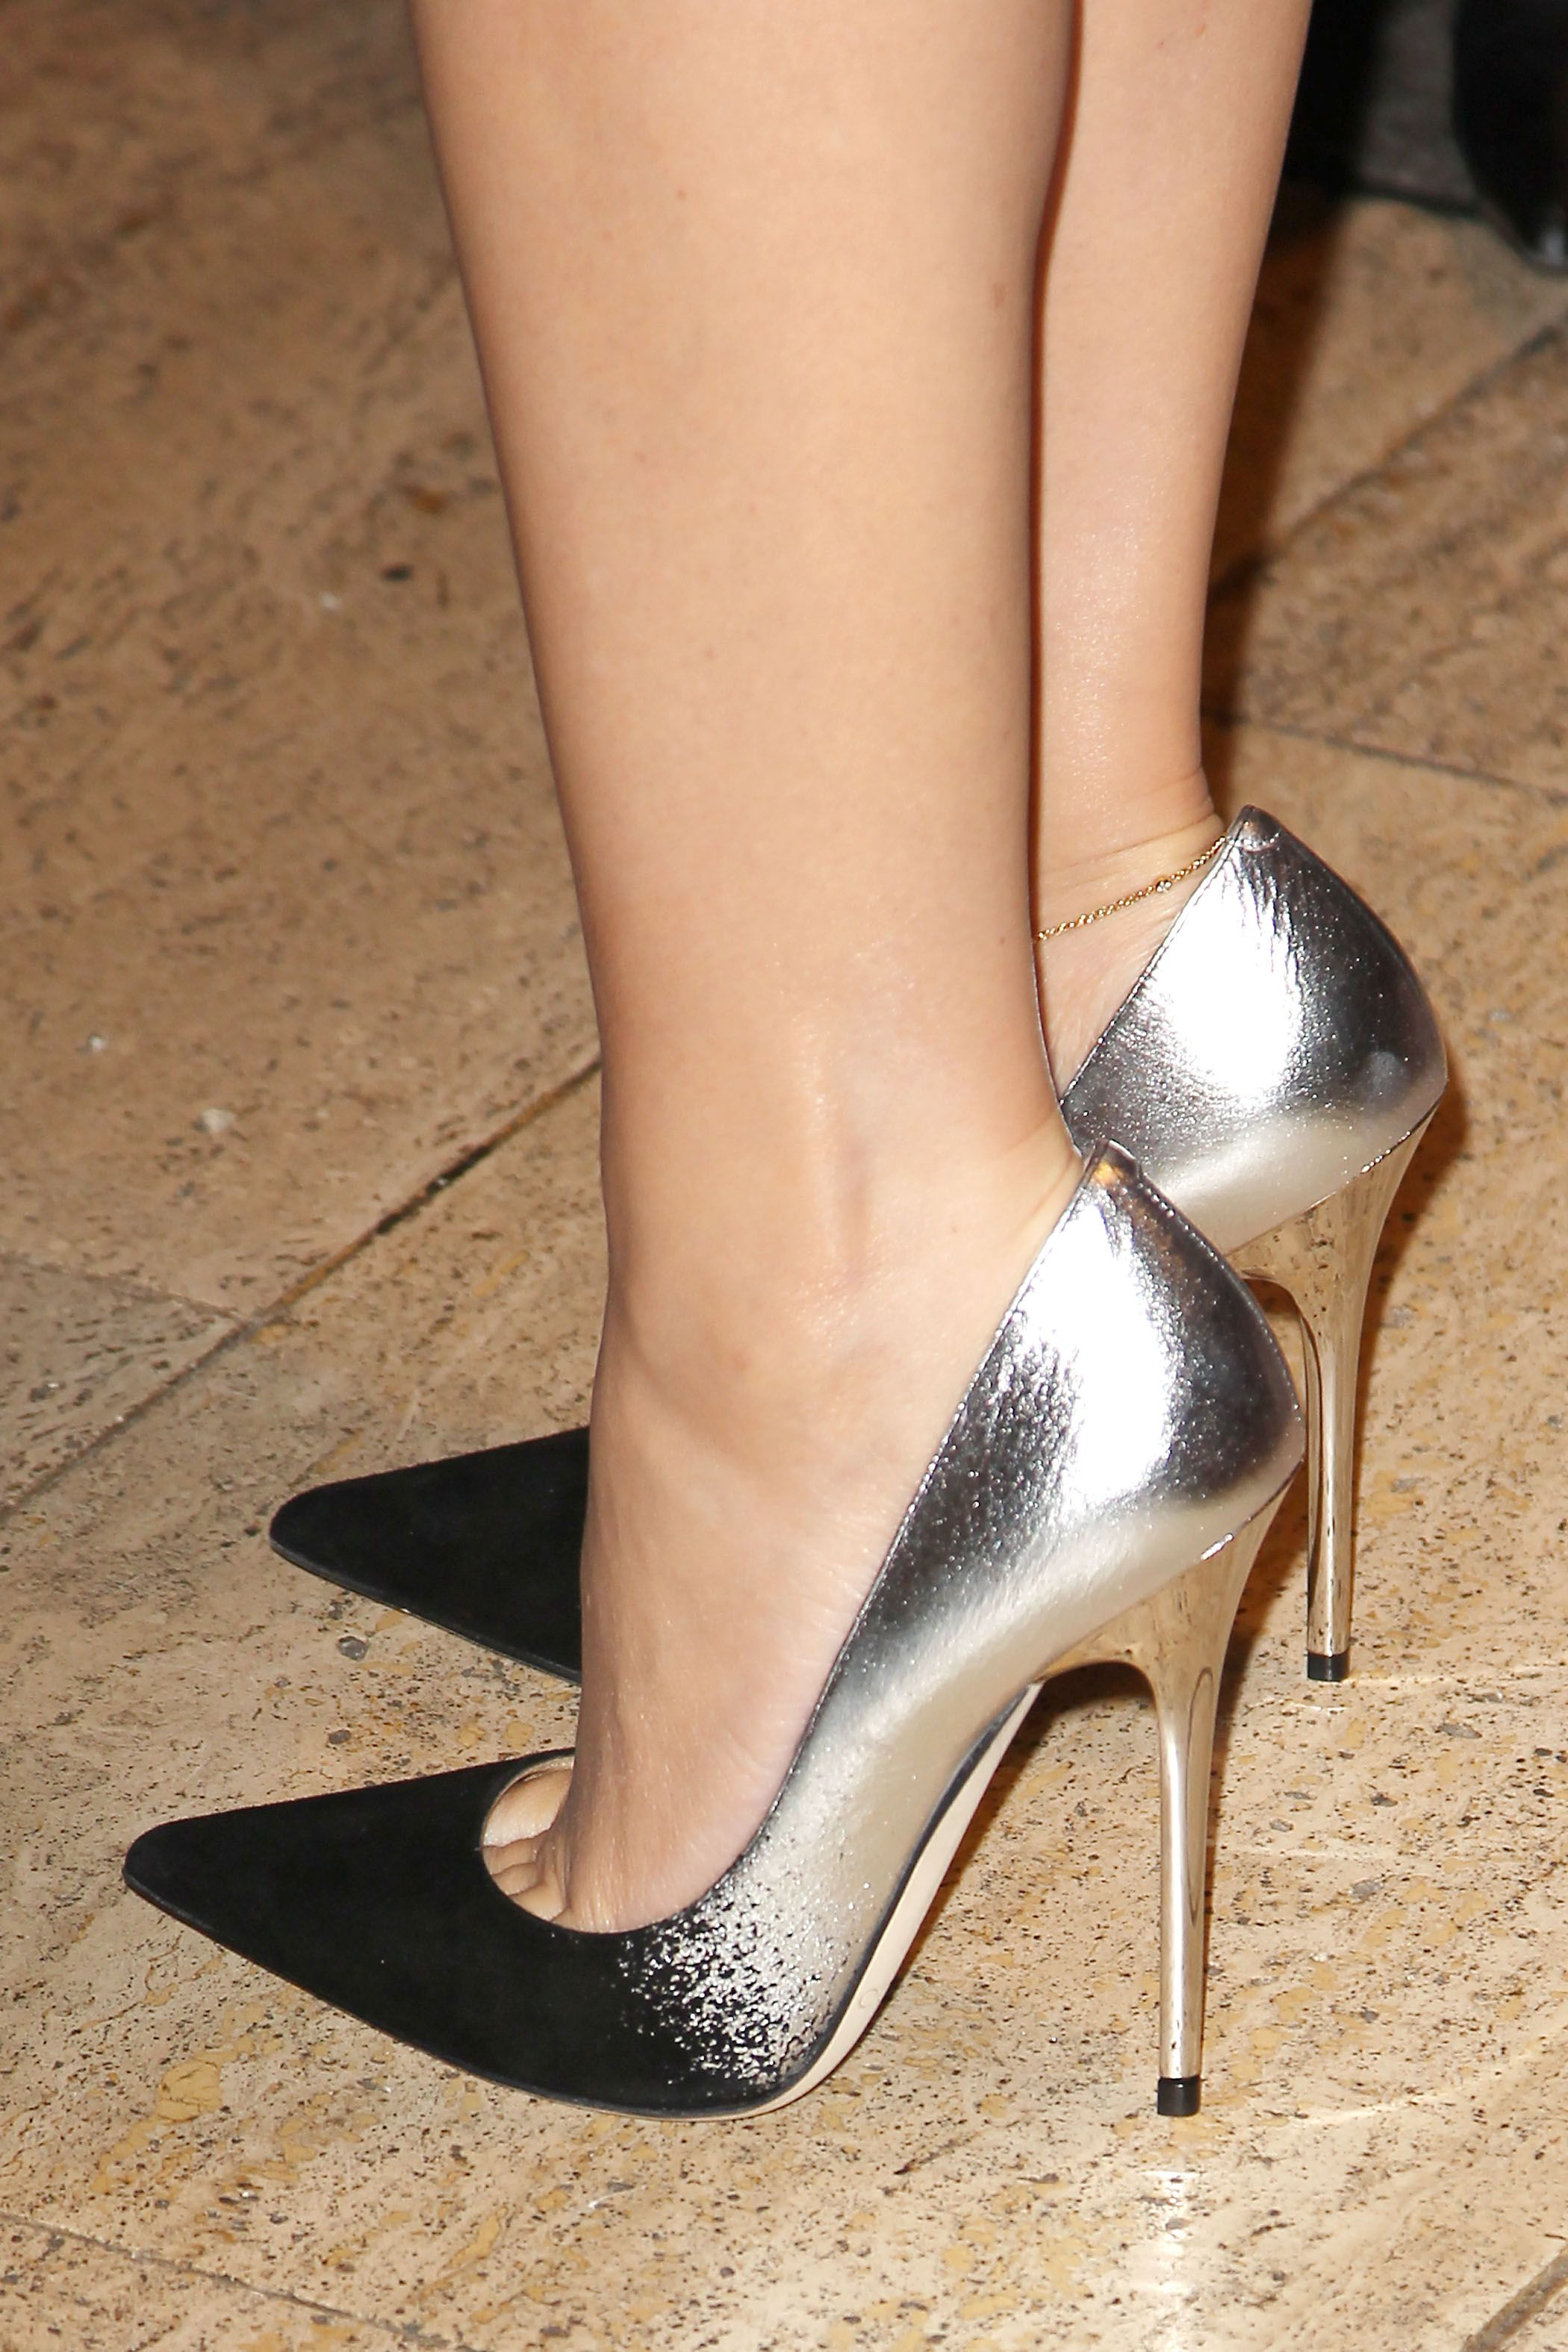 5039d650f4c191 jimmy choo anouk pumps in black/silver on the feet of kylie minogue.  #shoeporn